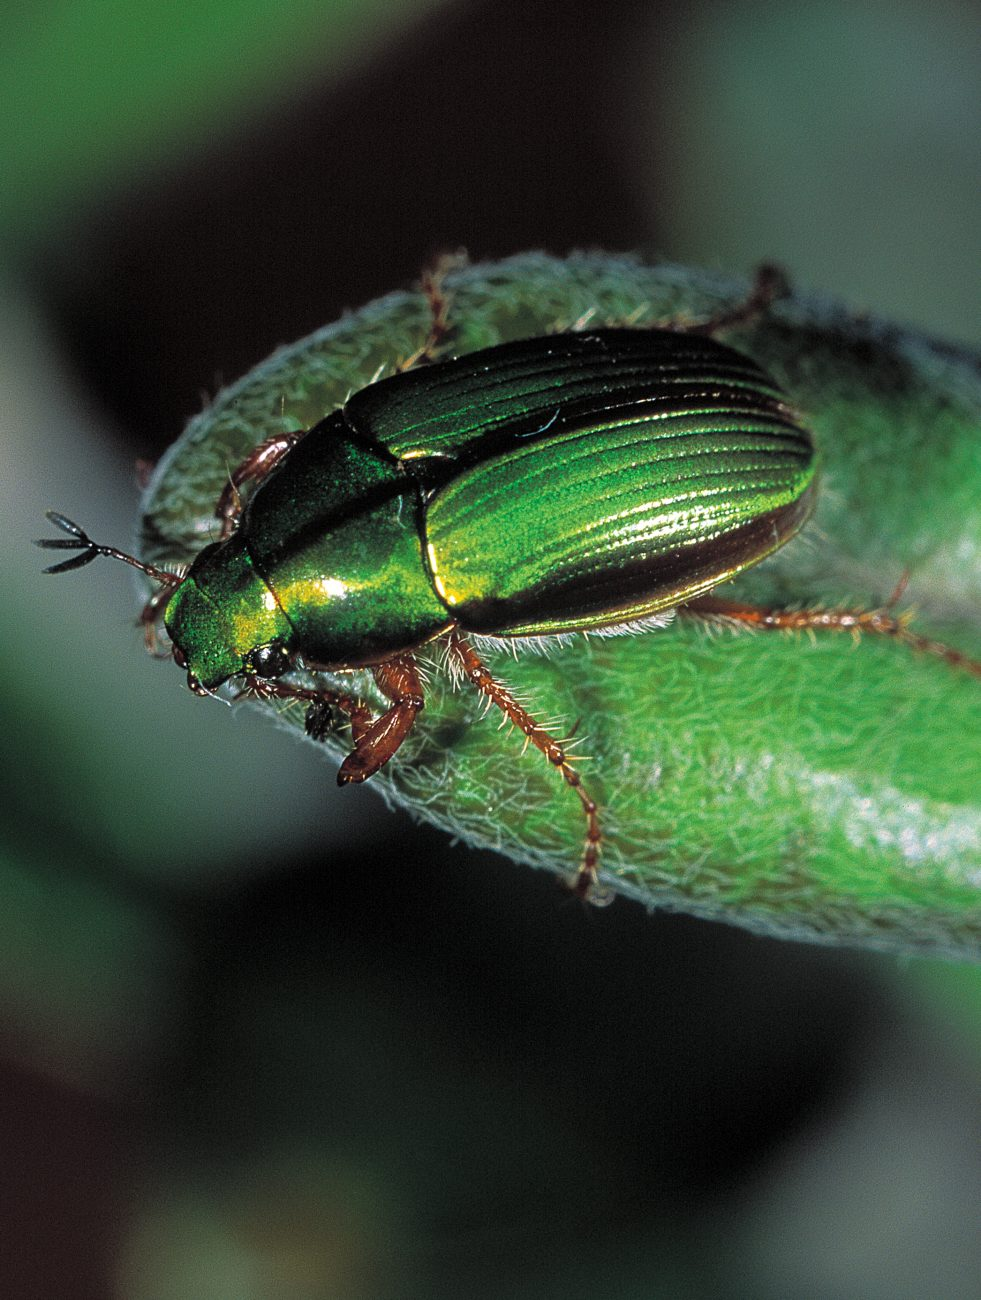 As its name suggests, the manuka chafer (Pyroonata festiva) dines on the aromatic leaves of New Zealand tea tree. Usually emerald green, this member of the scarab, or dung-beetle, family may also appear in blue, orange, red or purple livery. It is especially common beside streams.